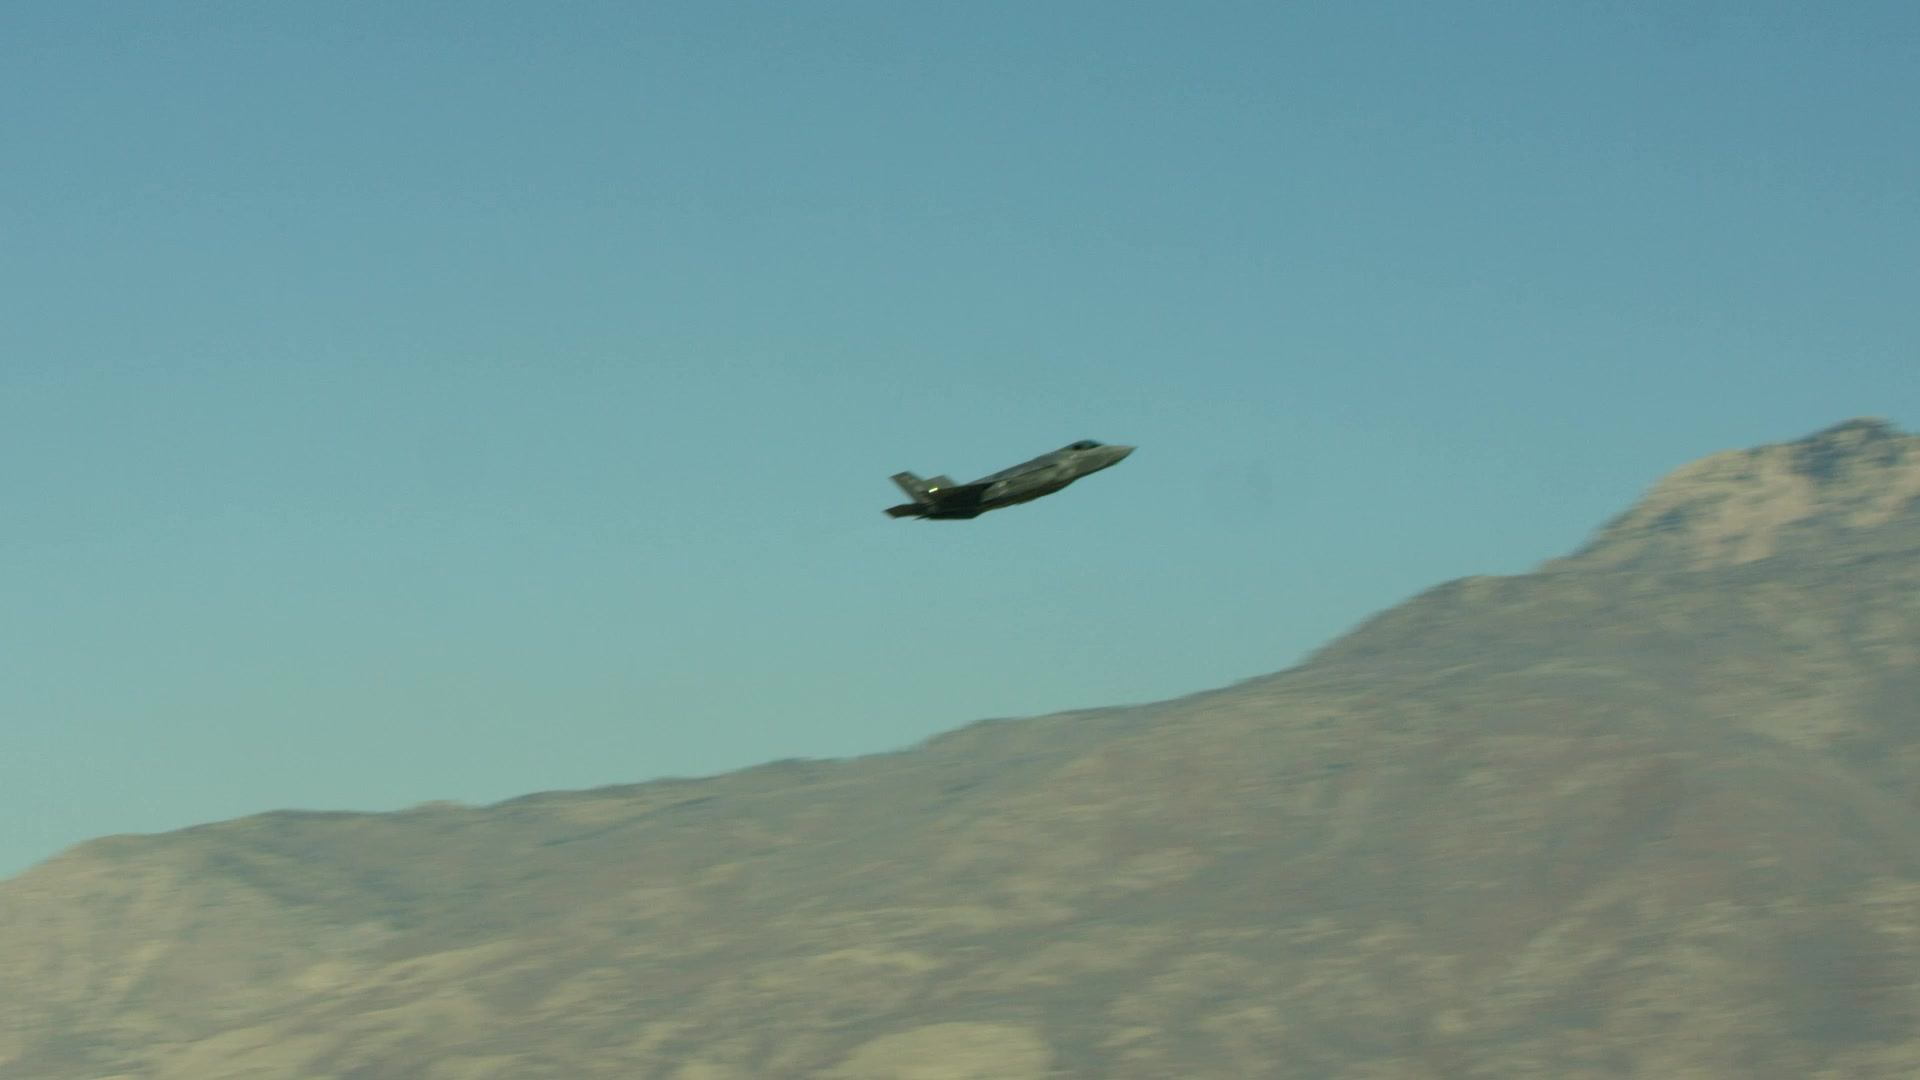 Hill AFB conducted a Combat Power Exercise on November 19, 2018.  The exercise demonstrated the ability to employ a large force of F-35As – testing readiness in the areas of personnel accountability, aircraft generation, ground operations, flight operations, and combat capability against air and ground targets.